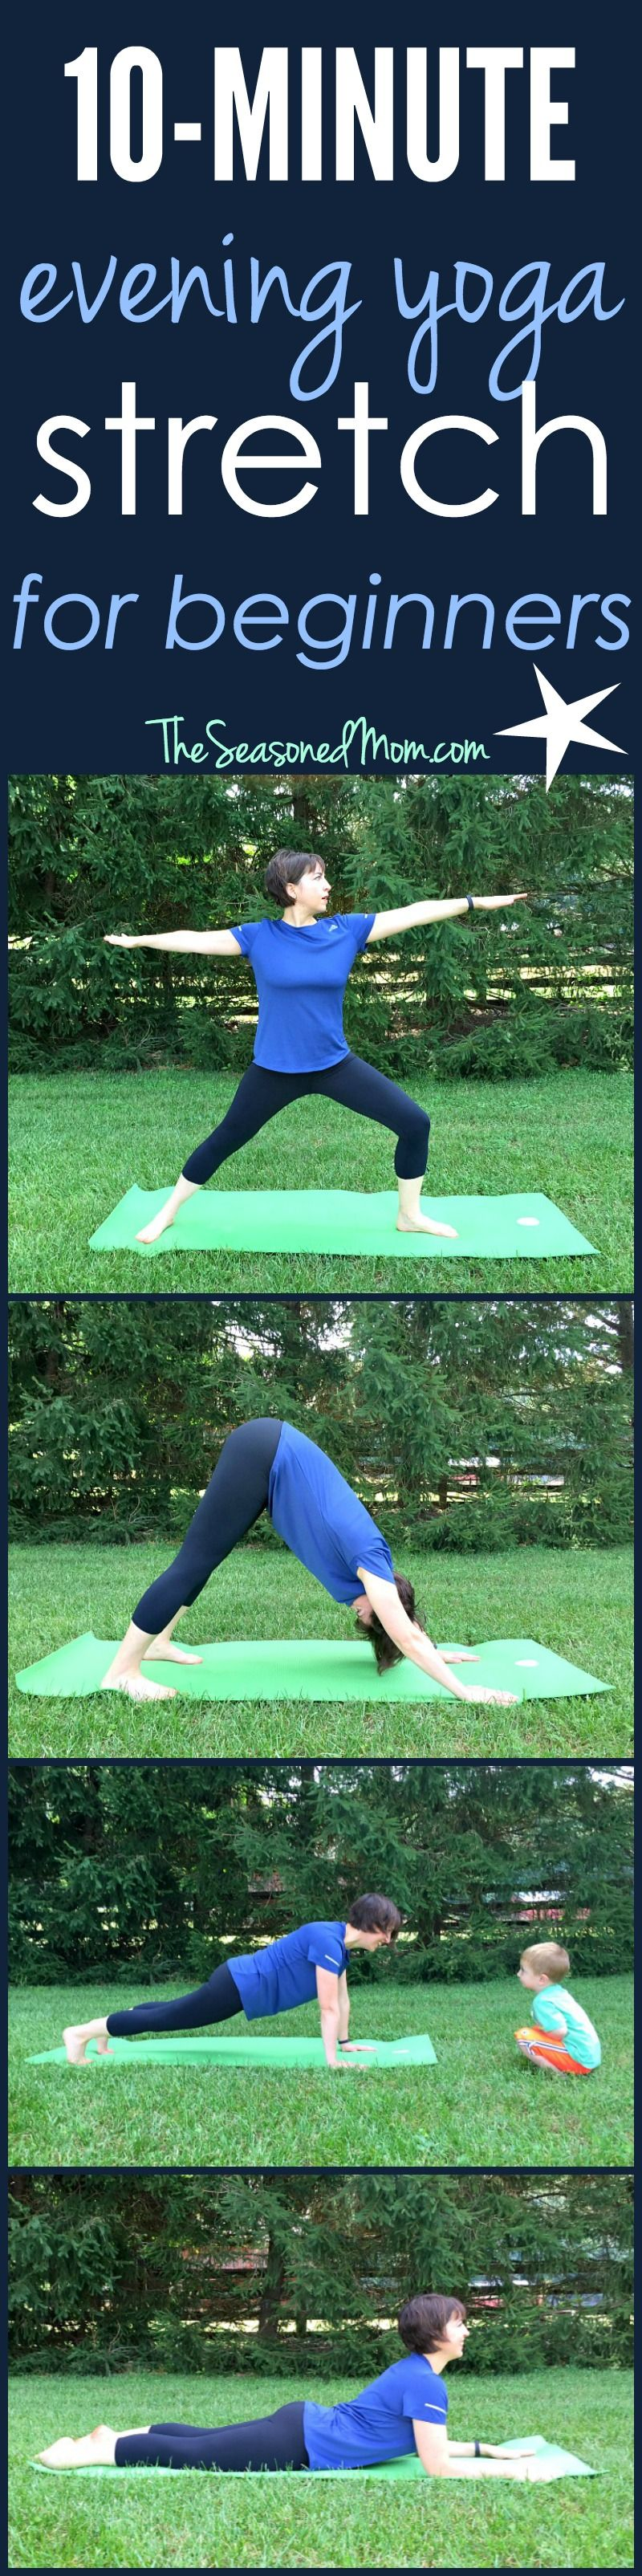 If you're looking to improve your flexibility, recover from a tough workout, or just wind down and relax, this 10 Minute Evening Yoga for Beginners is just what you need!